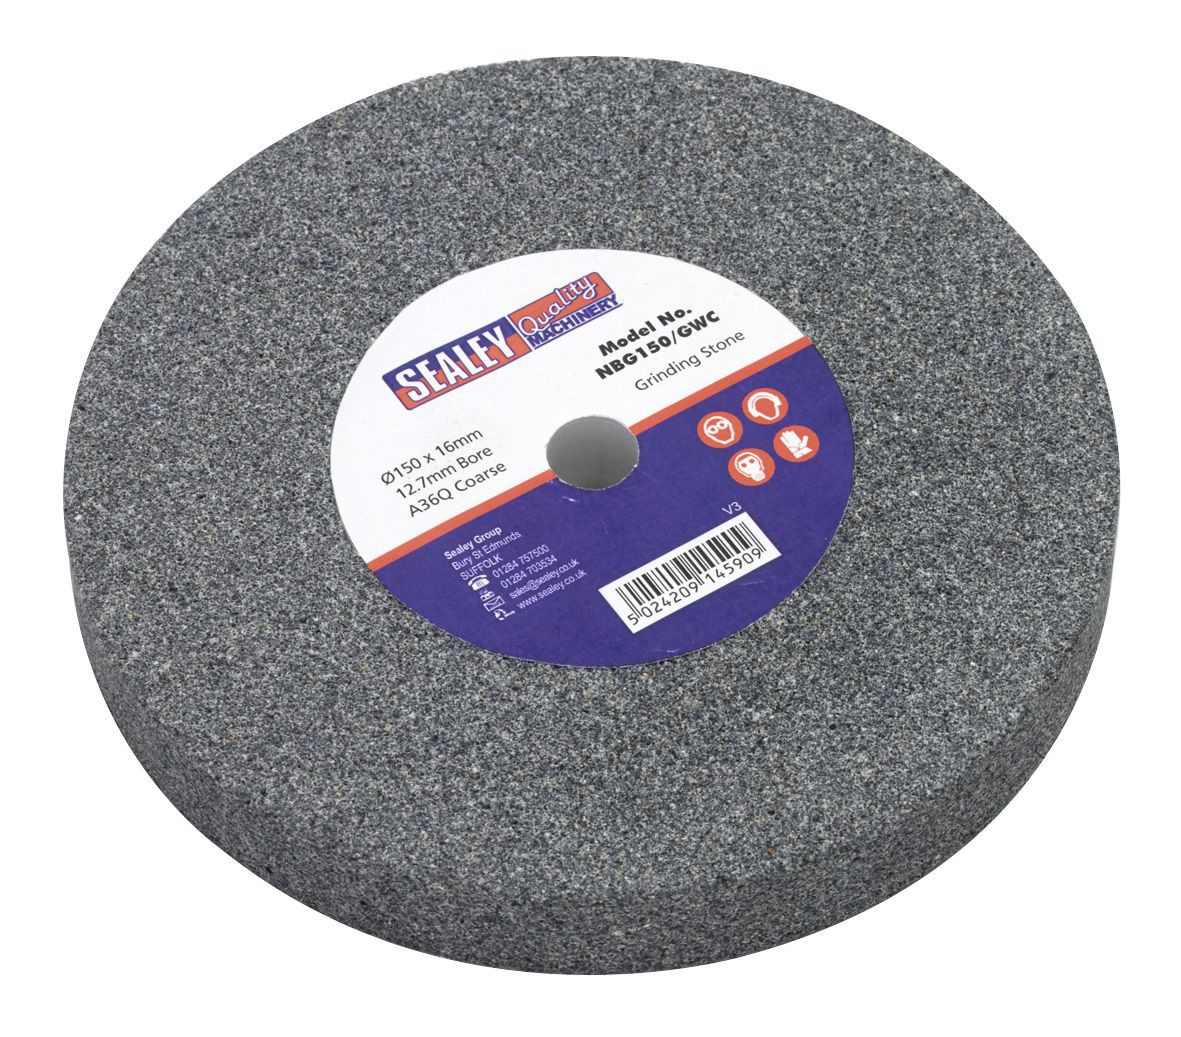 Sealey Grinding Stone 150 x 16mm 13mm Bore